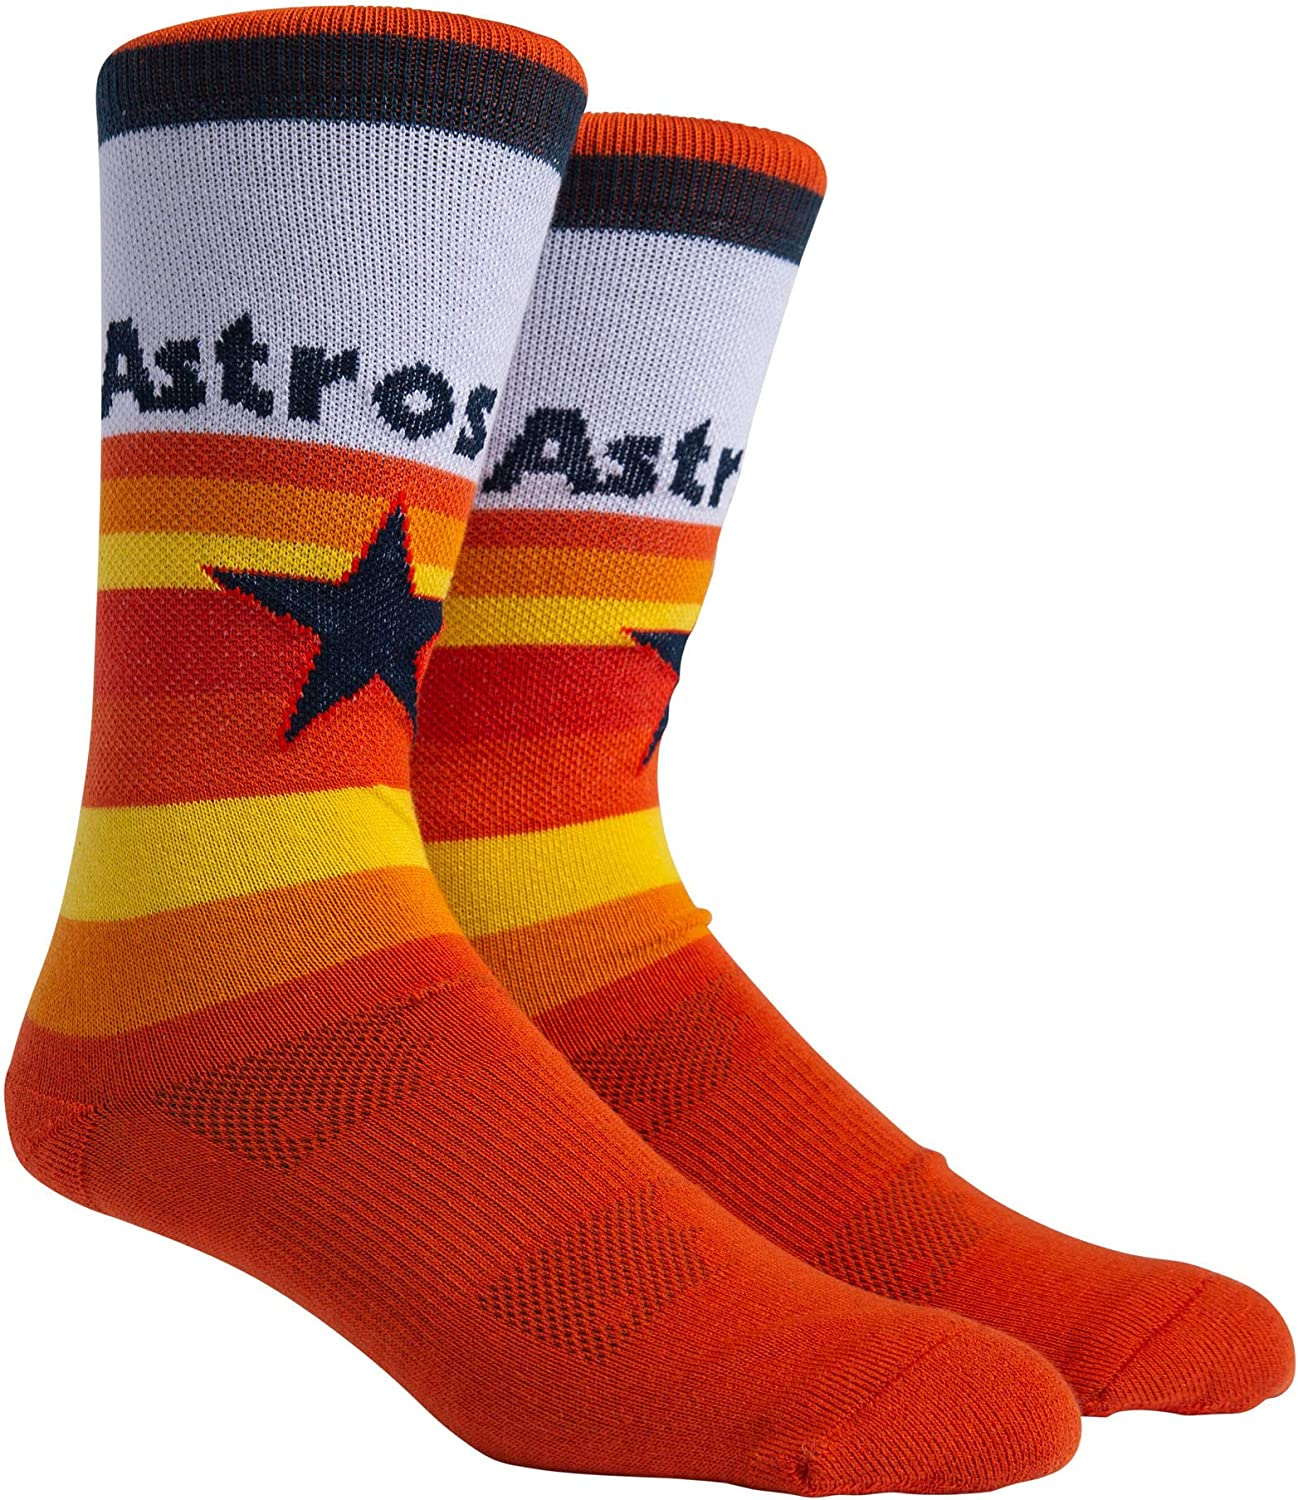 PKWY by Stance MLB Unisex 1-Pack Houston Astros Uniform Player-Number Crew Socks